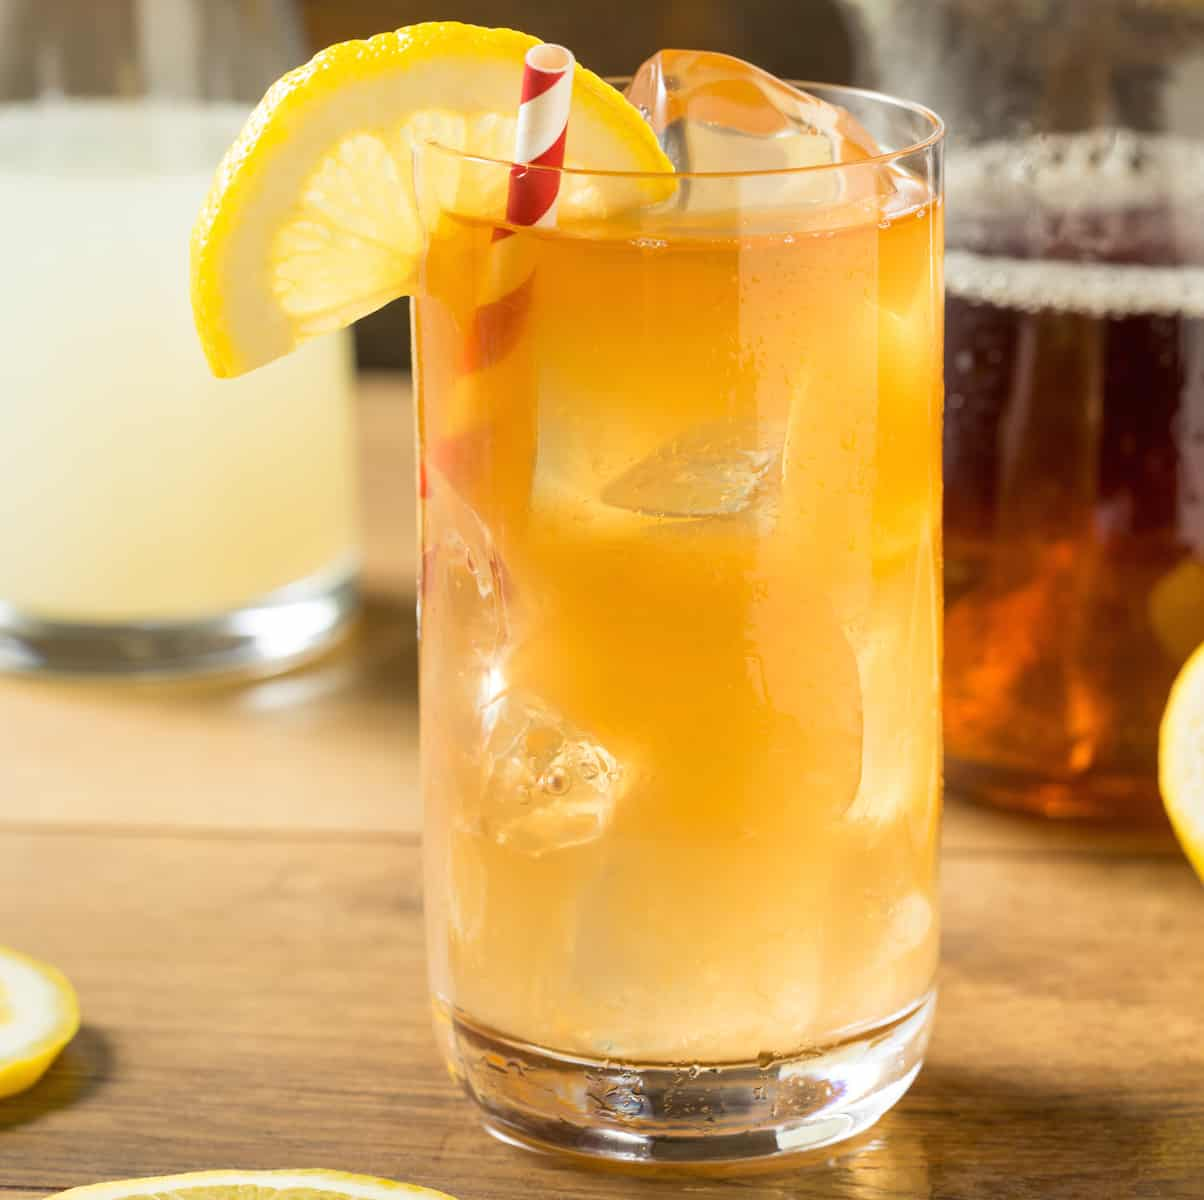 arnold palmer drink in glass with straw and lemon slice